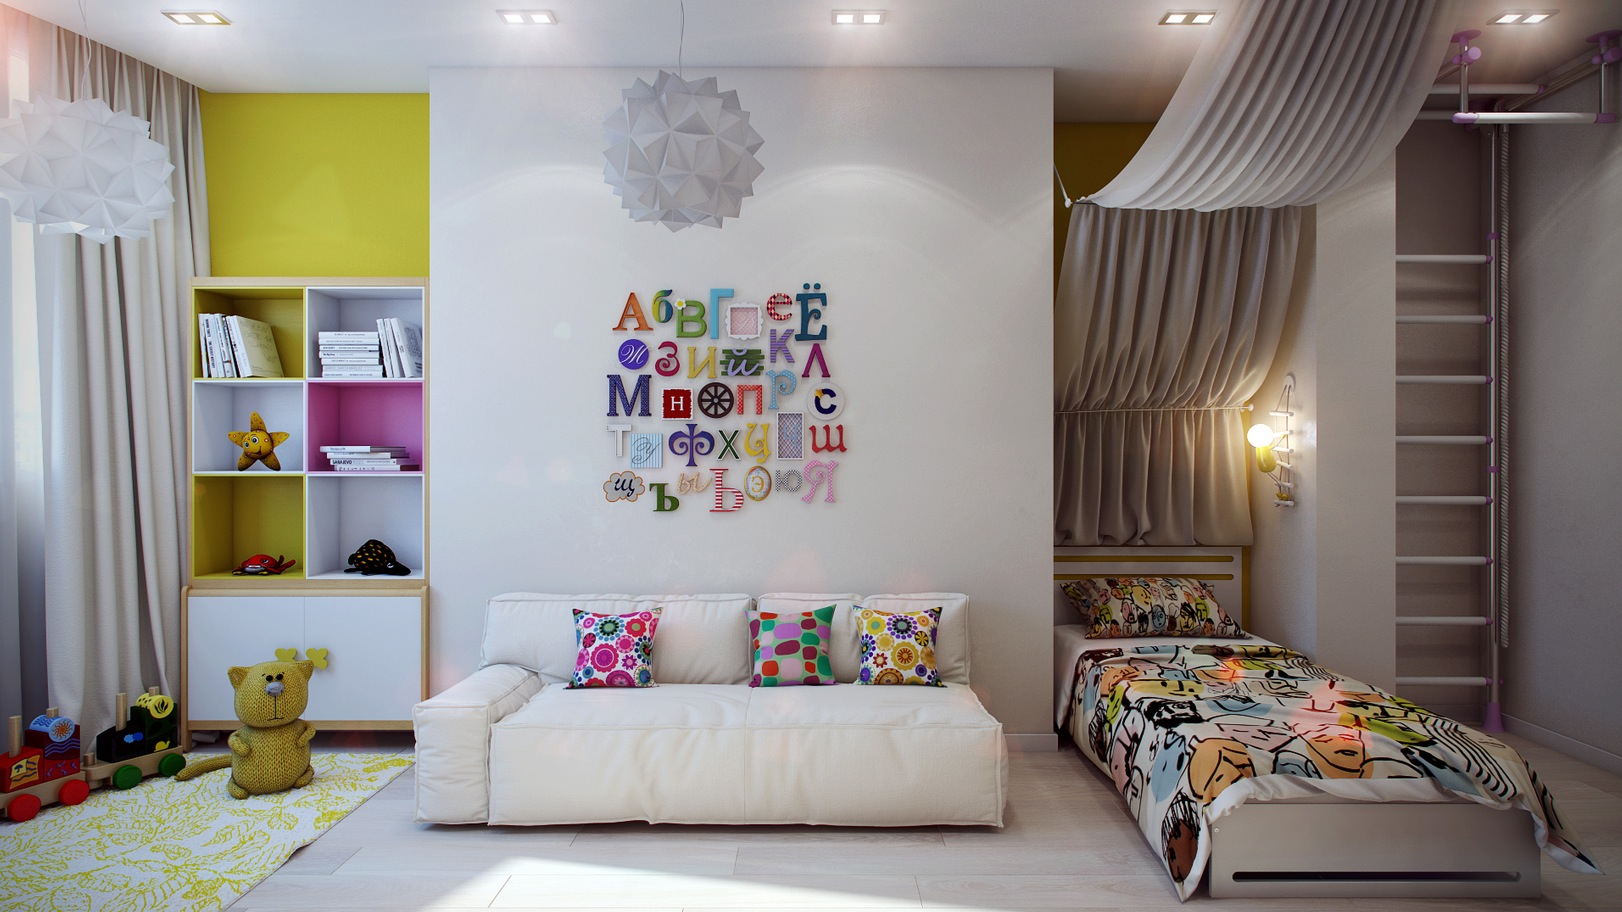 18 Creative And Chic Kids' Room Decorating Ideas. That's it. Done adult-ing. By Bridget Mallon and Kelsey Kloss. Jul 6, check out 18 kids' rooms that are bound to have you rethinking your own bedroom decor. Plus, get great ideas for decorating boys rooms, girls rooms.